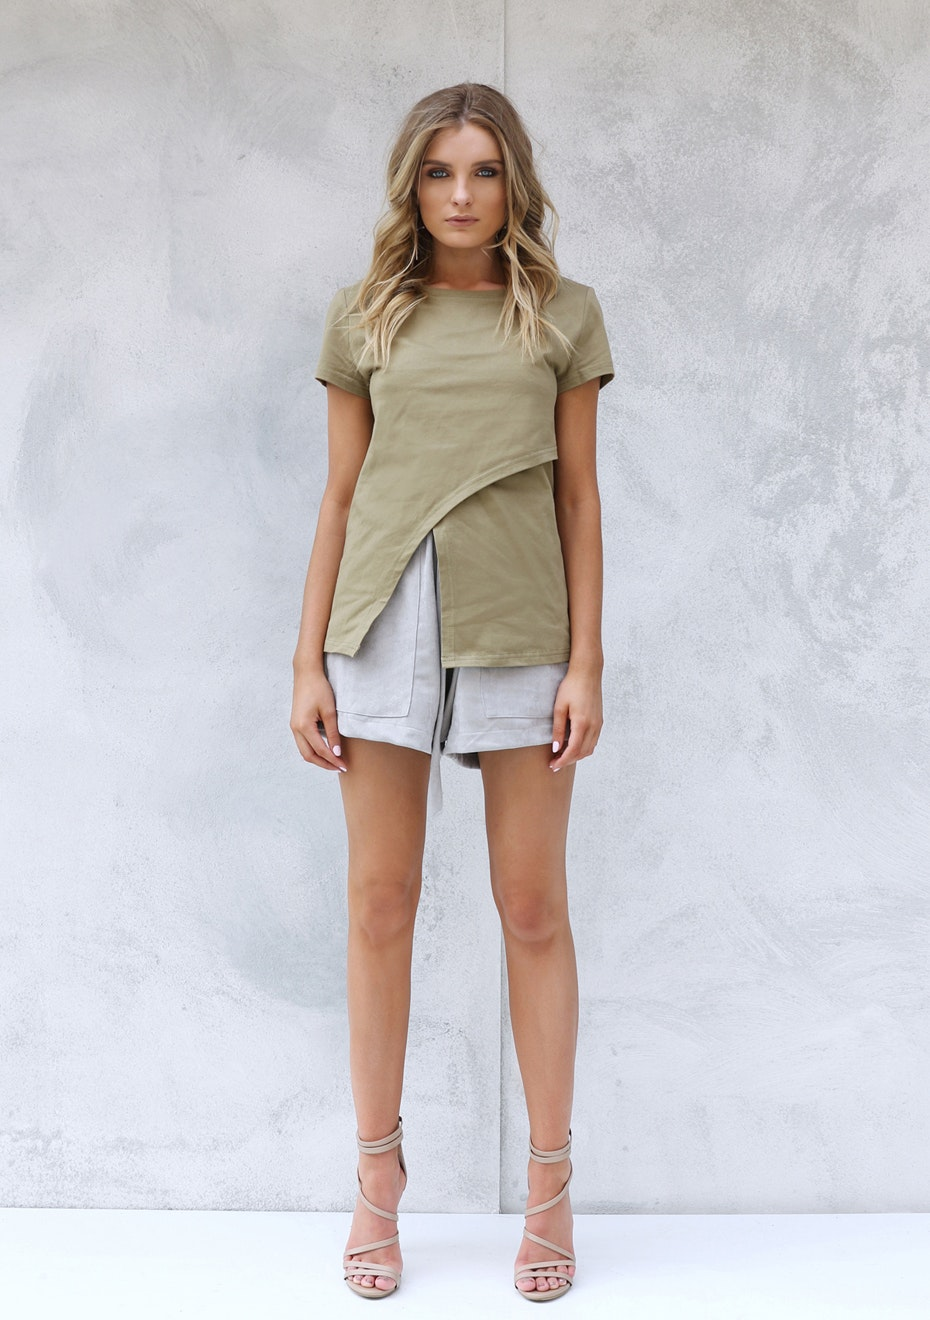 Madison - MILLIE TEE - KHAKI